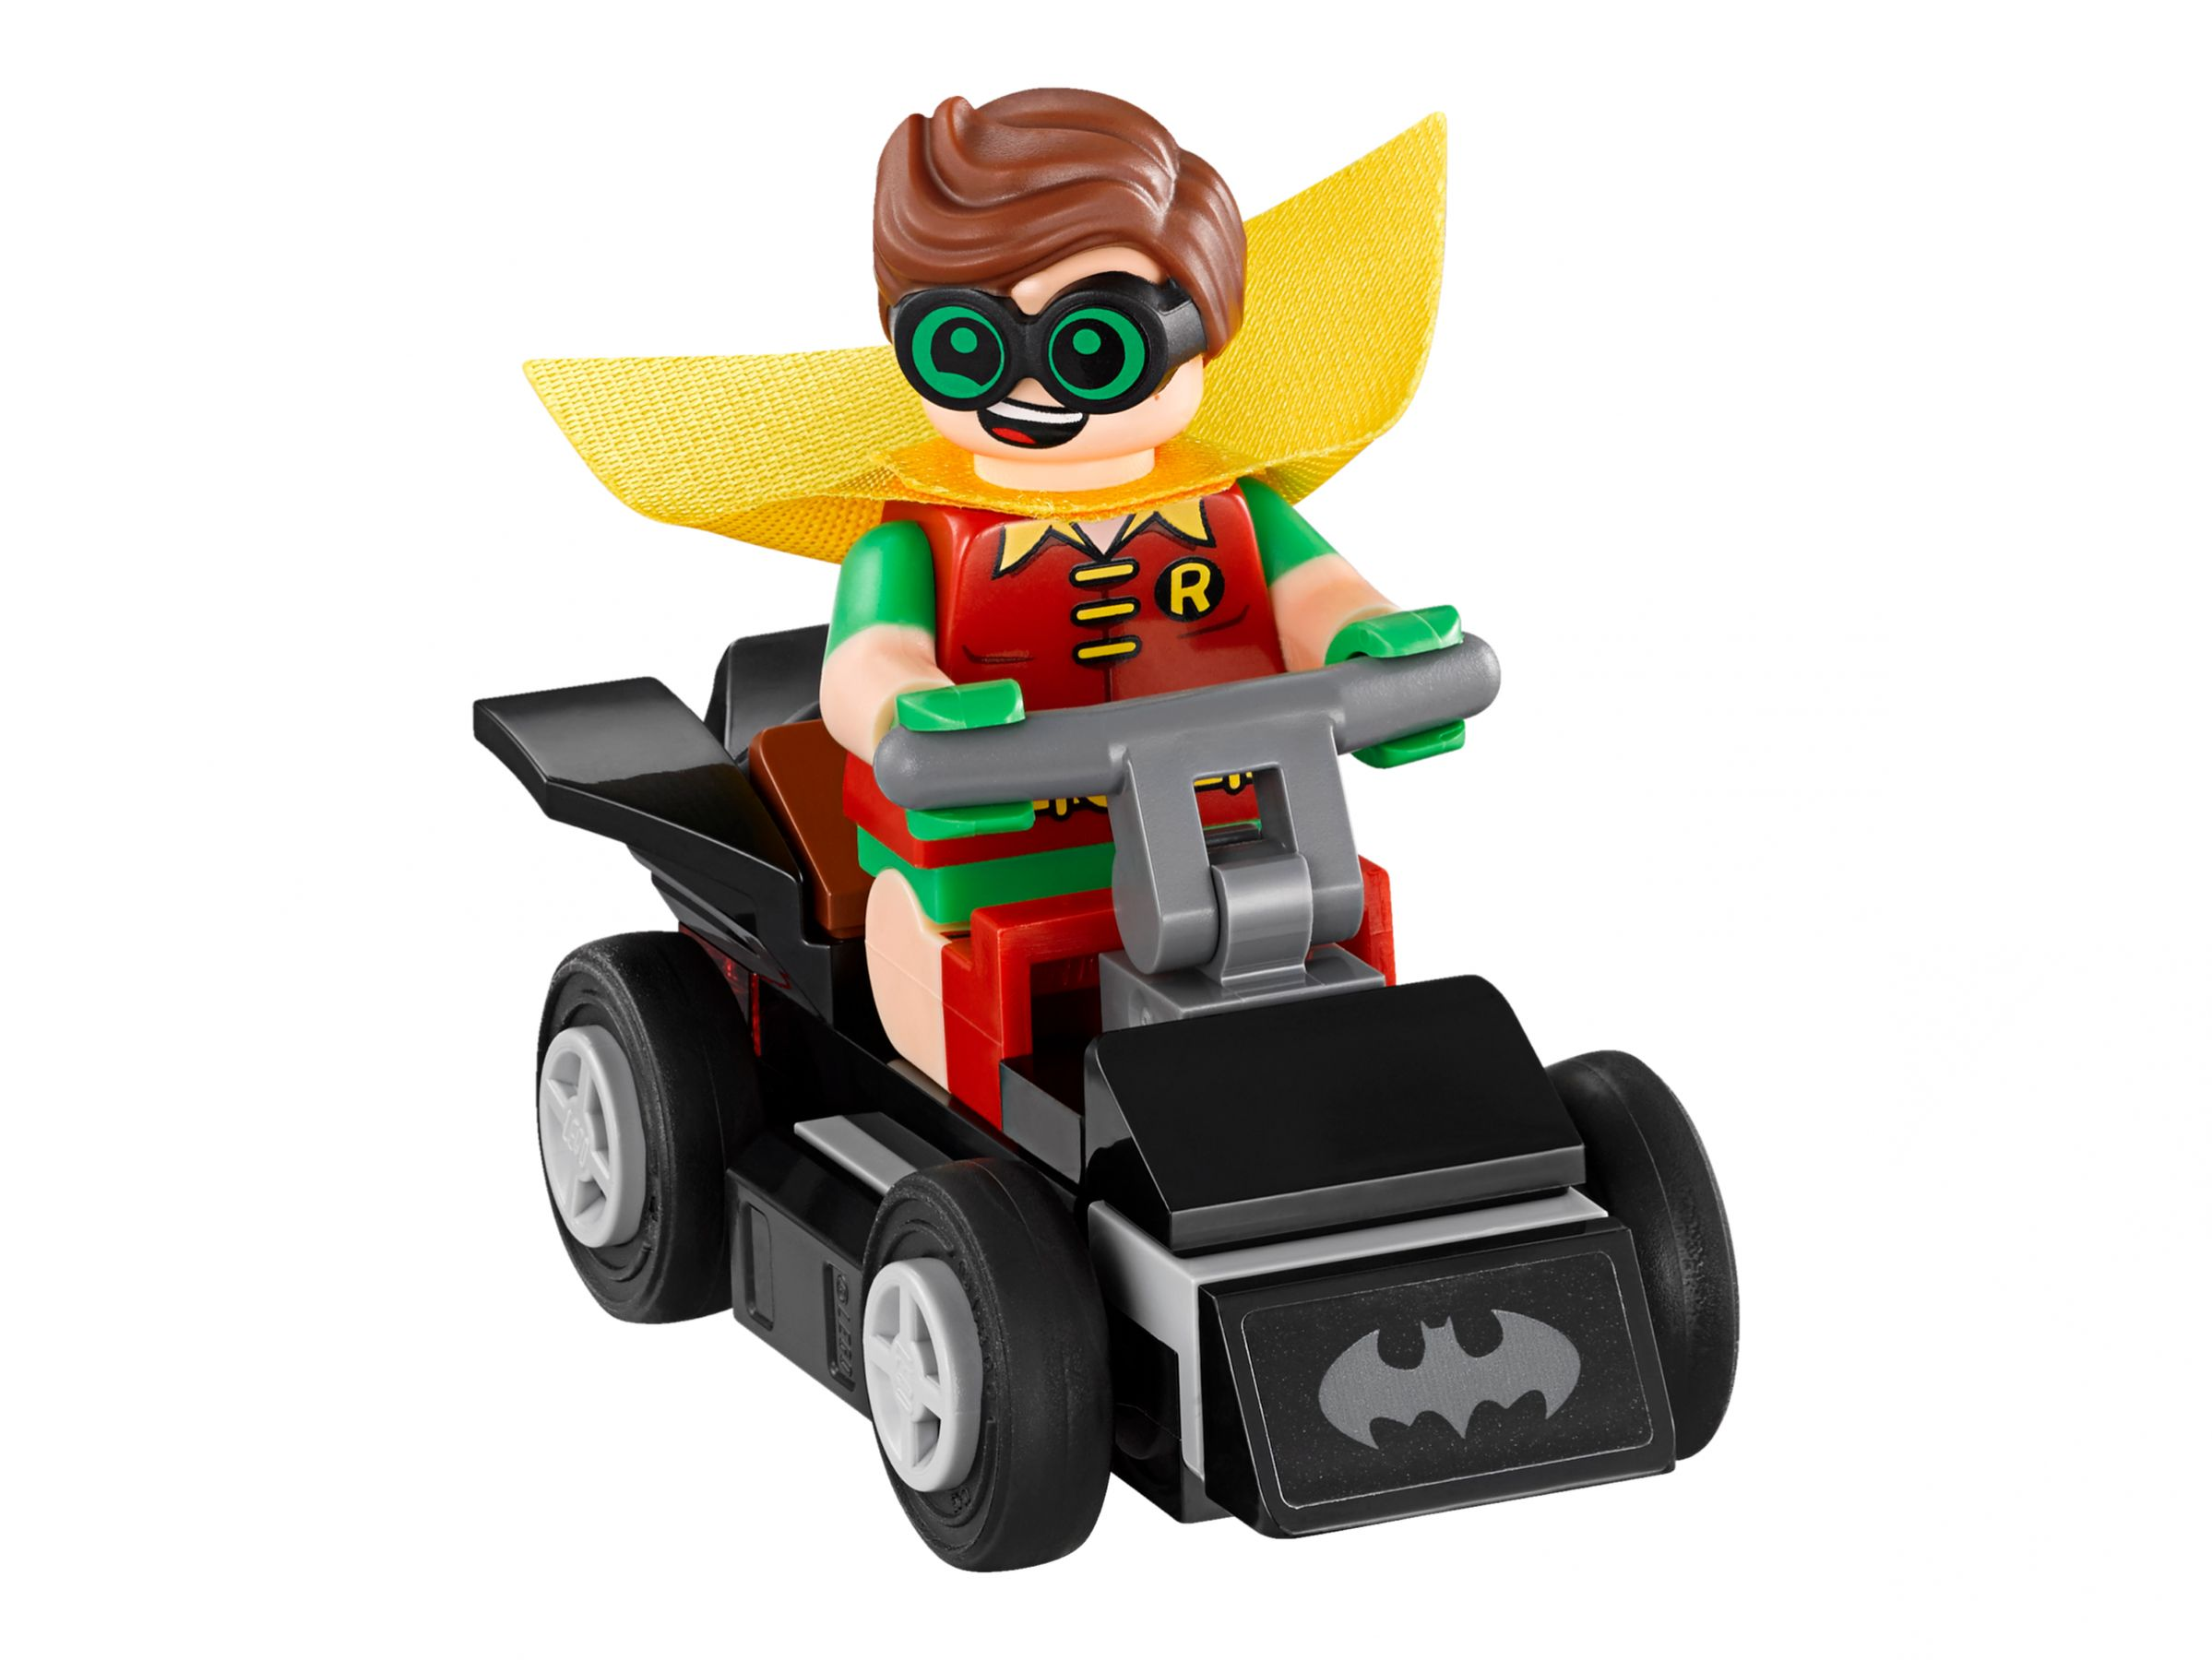 LEGO The LEGO Batman Movie 70916 Batwing LEGO_70916_alt6.jpg